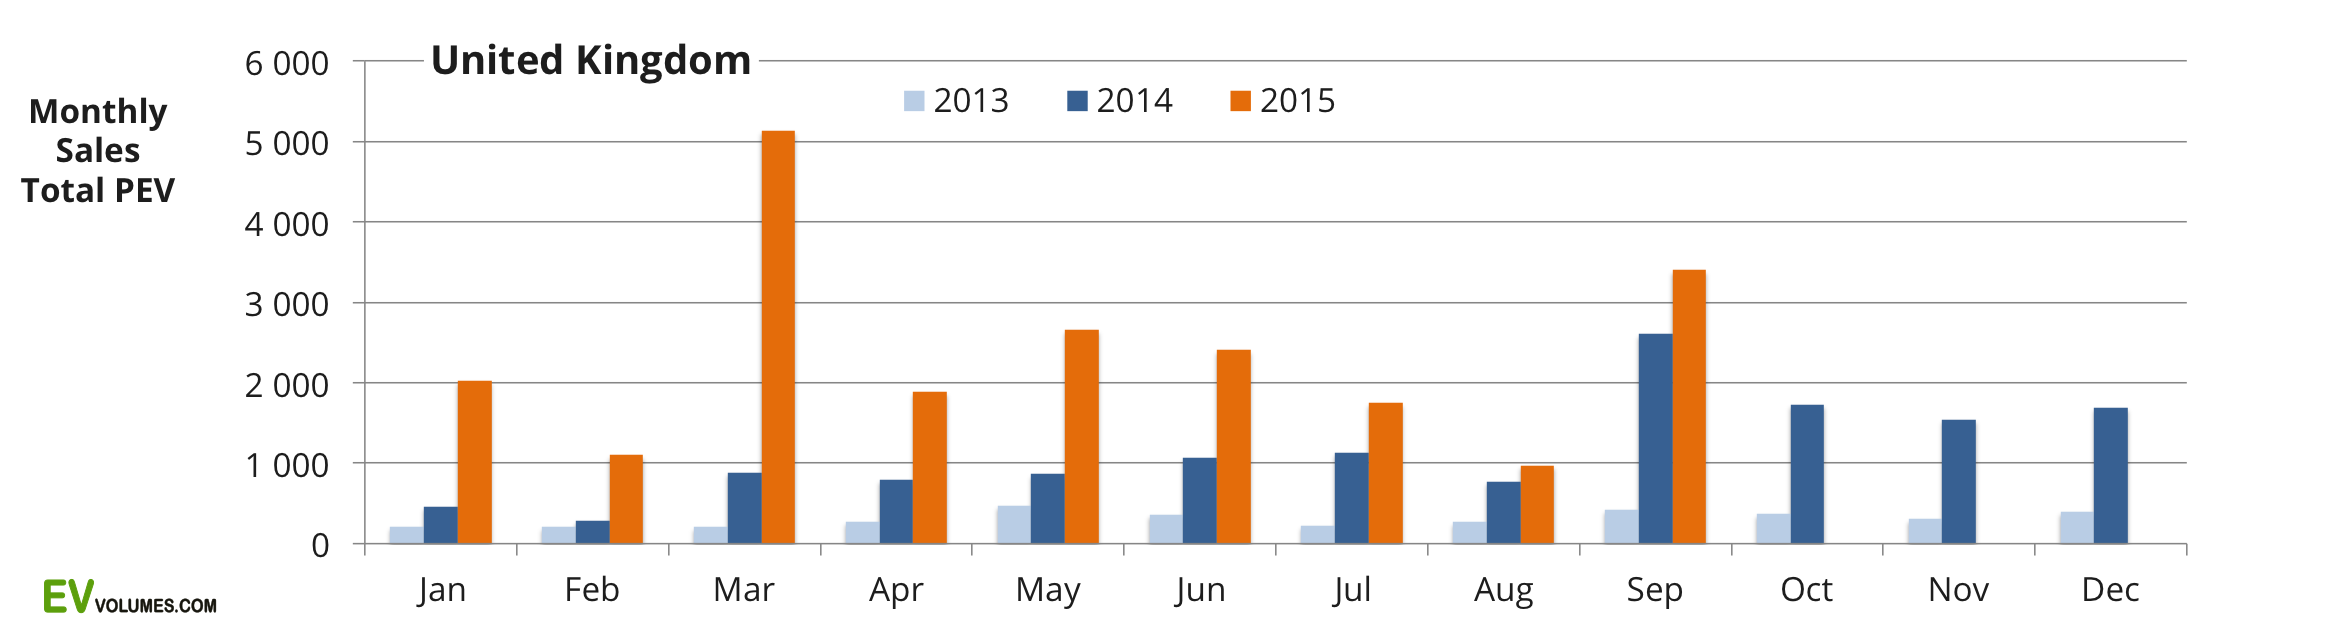 first United Kingdom 3rd Quarter of 2015 and YTD image